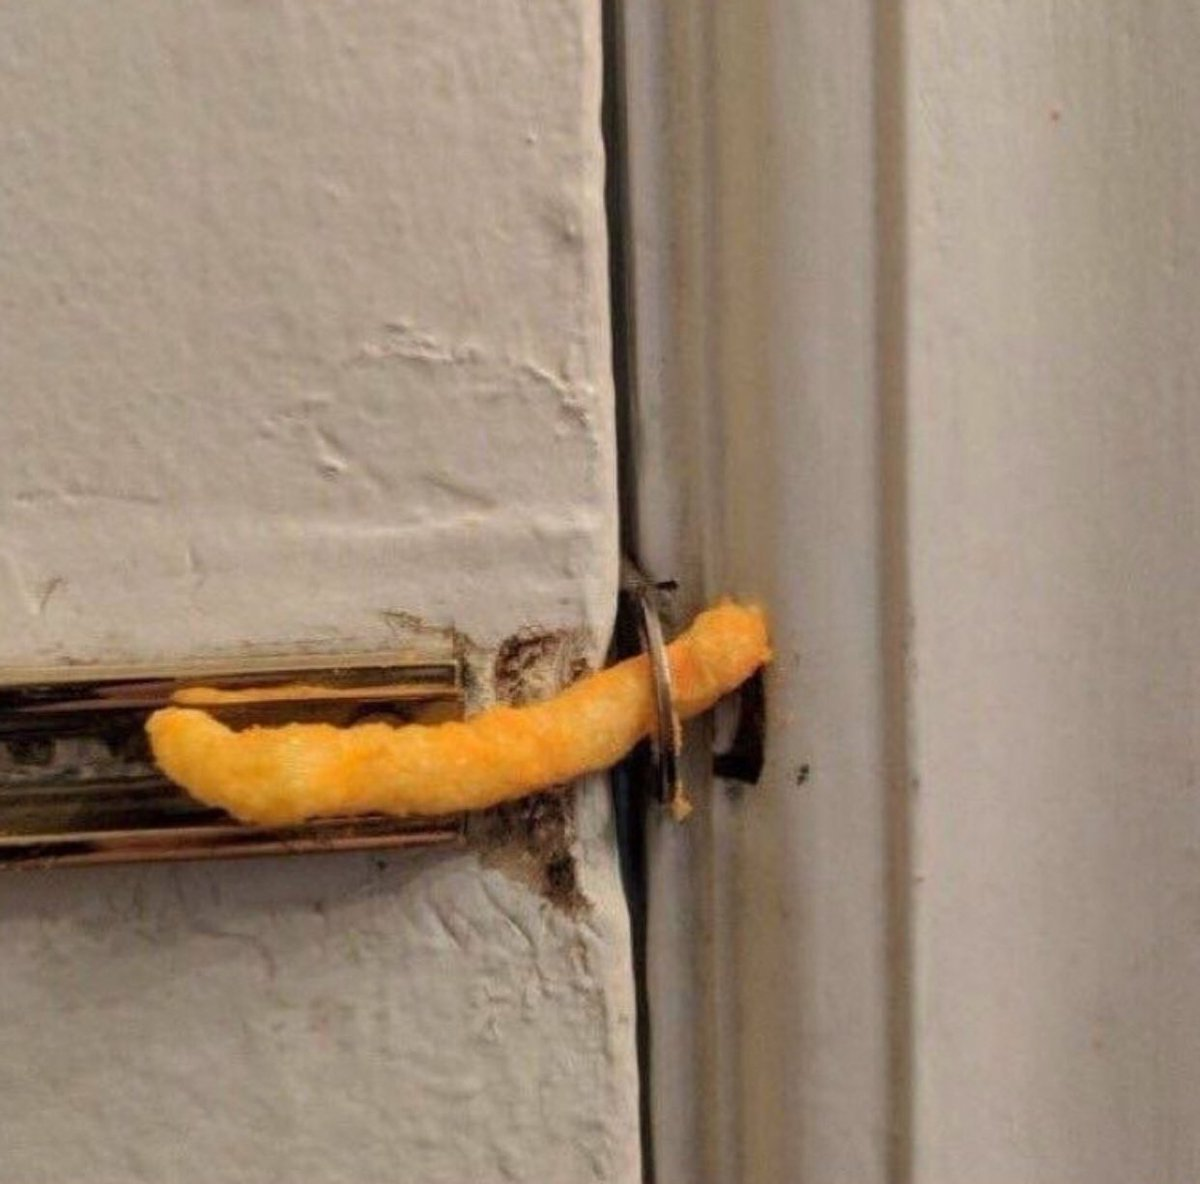 this is how much effort i put into protecting my own heart from people with bad intentions